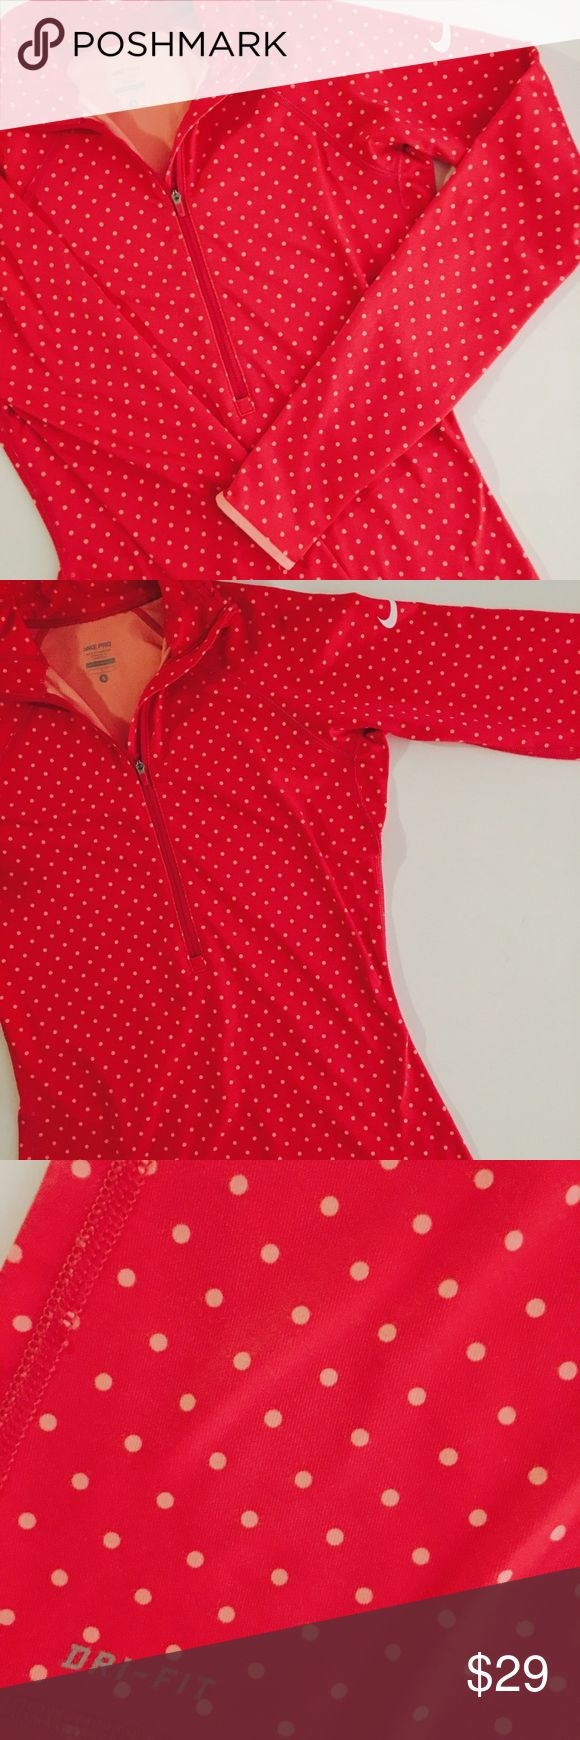 Nike Pro Hot Pink Polka Dot Quarter Zip Pullover Size Small Nike Pro Hot Pink Quarter-Zip Pullover with Peach trim and Polka Dot Pattern. 88% Polyester, 12% Spandex. Like-New Condition.   All items come from a smoke free home and are shipped on the same or following day an order is placed.   Reasonable offers are considered and often accepted. Deals on bundles are also available.   Items are shipped in polymailers placed INSIDE boxes to ensure all purchases are completely protected from…